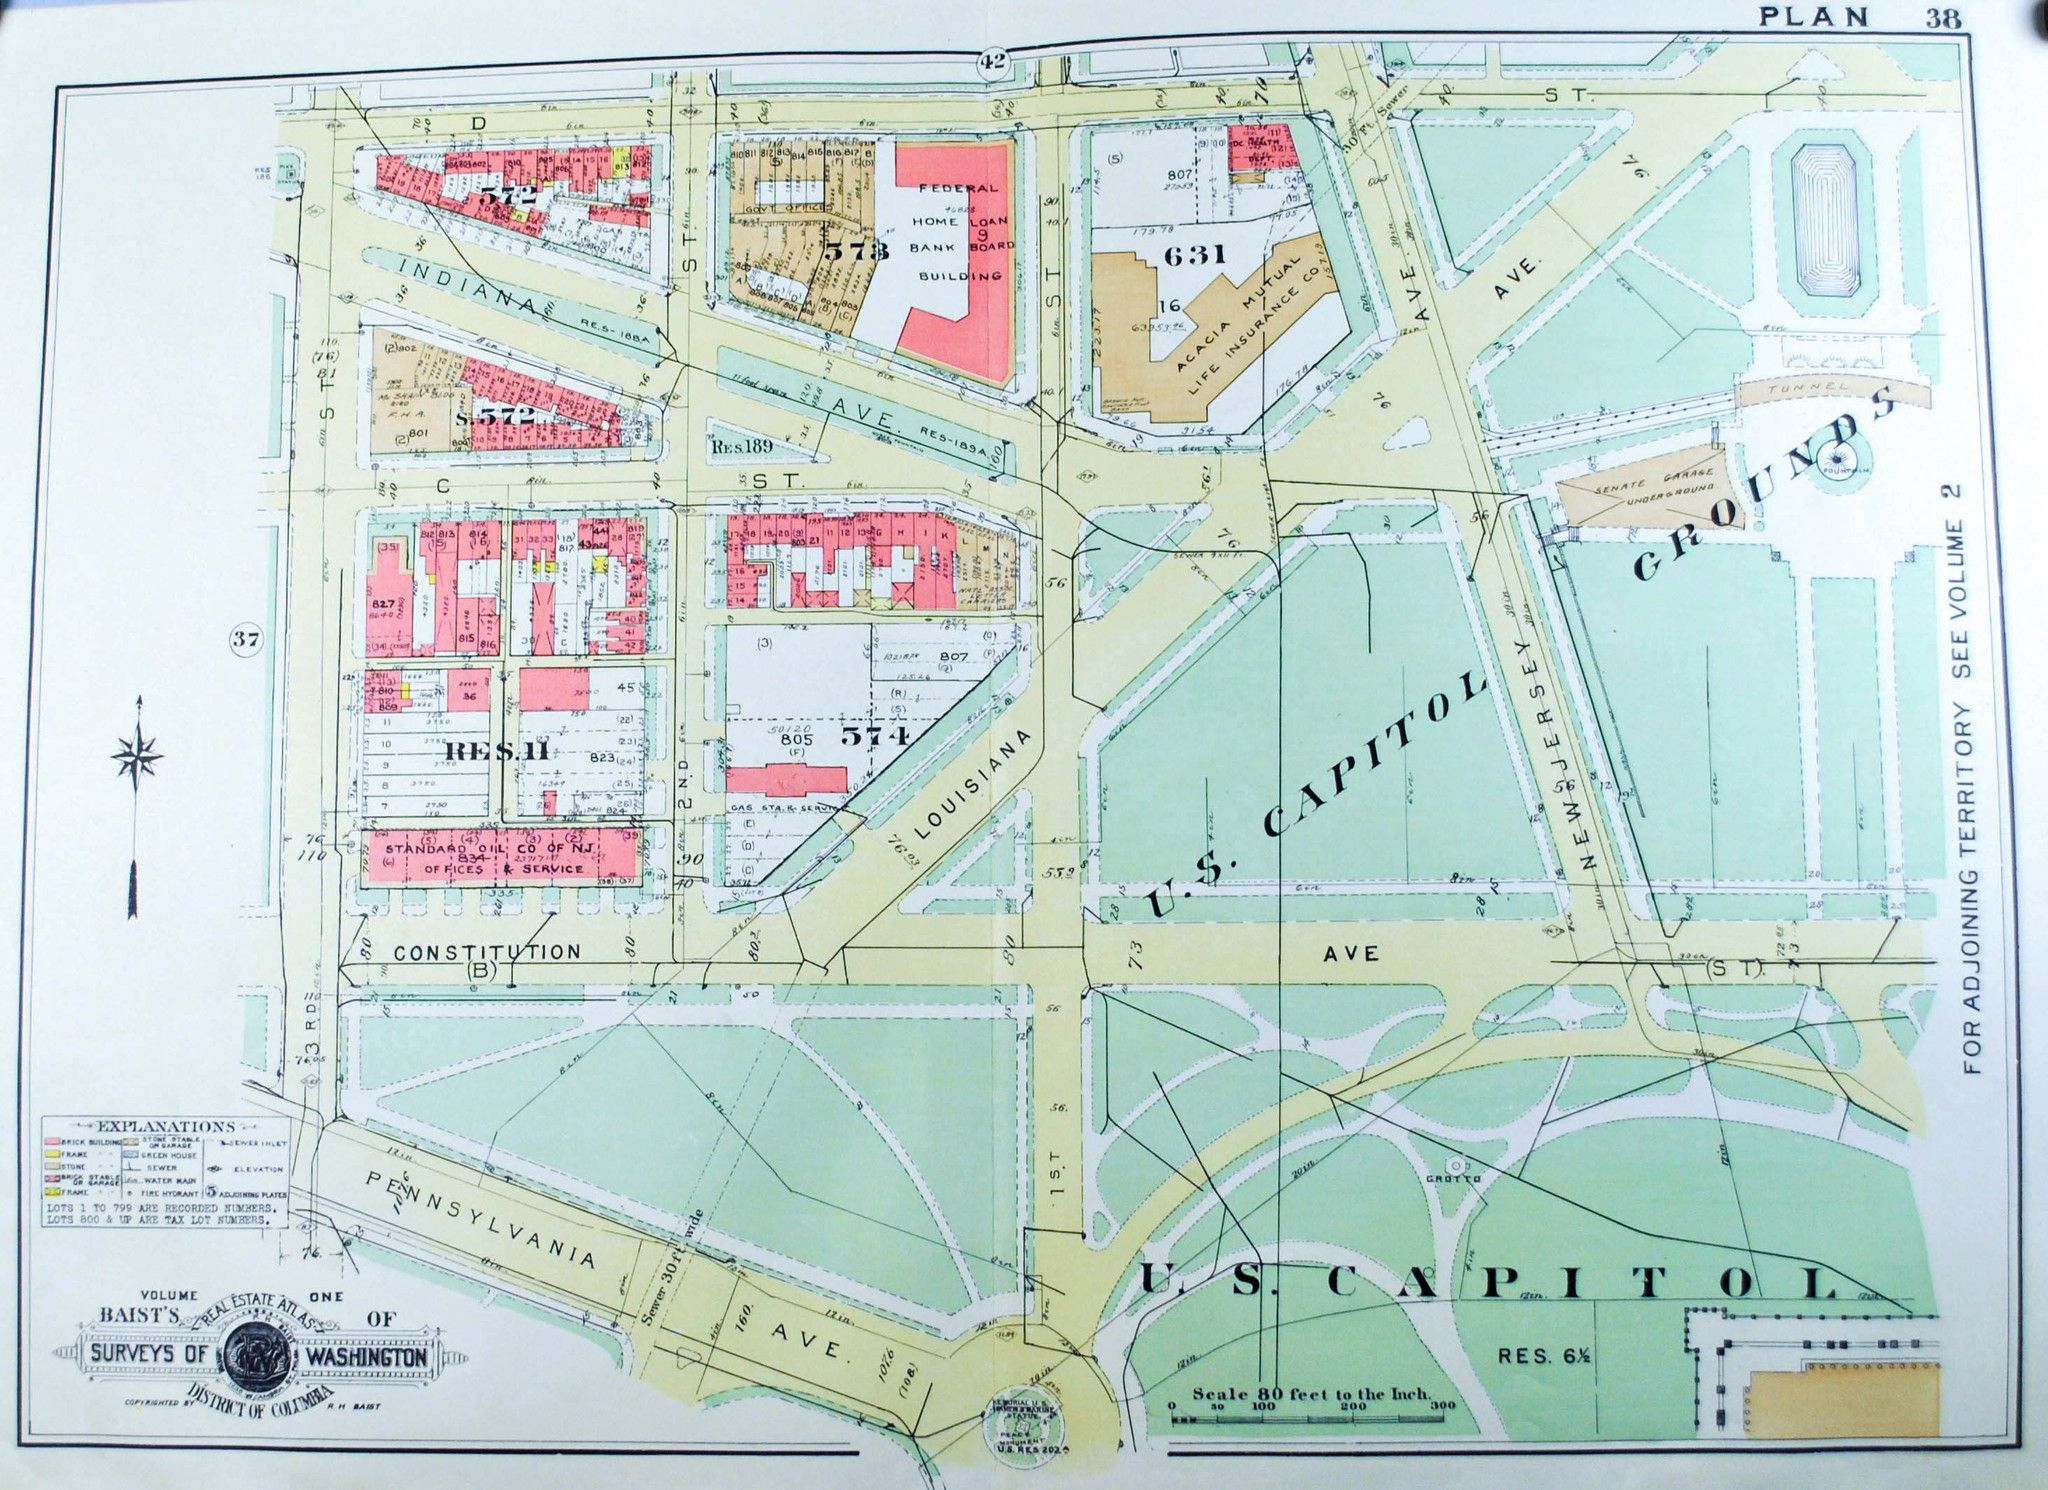 Washington DC US Capitol Grounds Vintage Baist City Map - Map of us capitol grounds